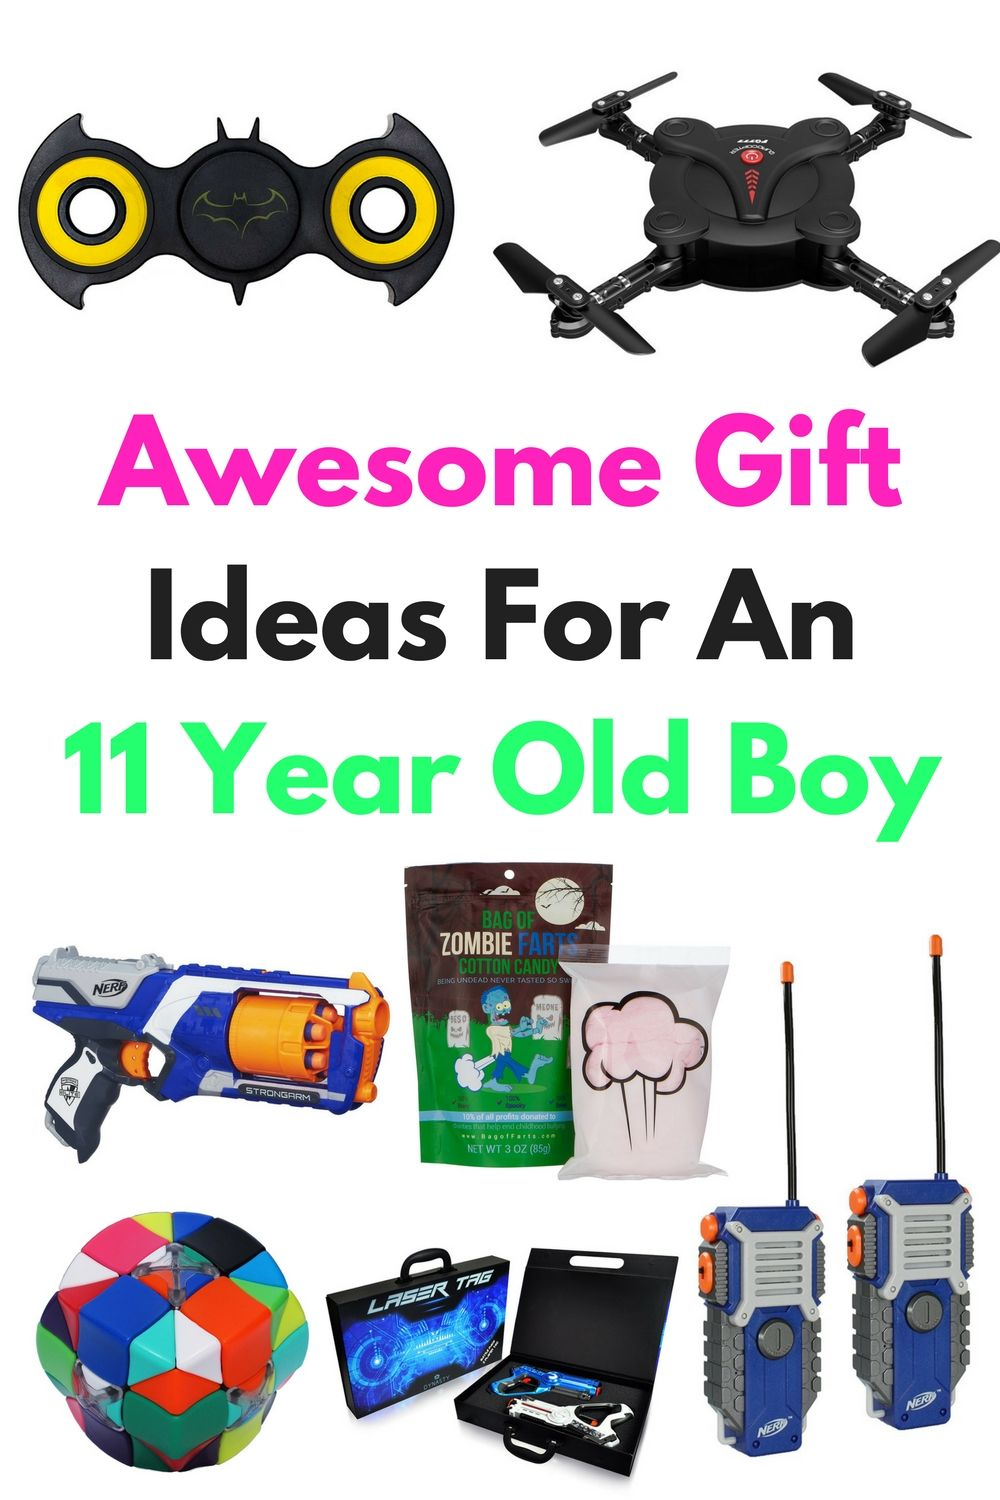 awesome gift ideas for an 11 year old boy are you searching for gift ideas for an 11 year old boy here are a lot of awesome ideas to use for a birthday - 11 Year Old Boy Christmas Gift Ideas